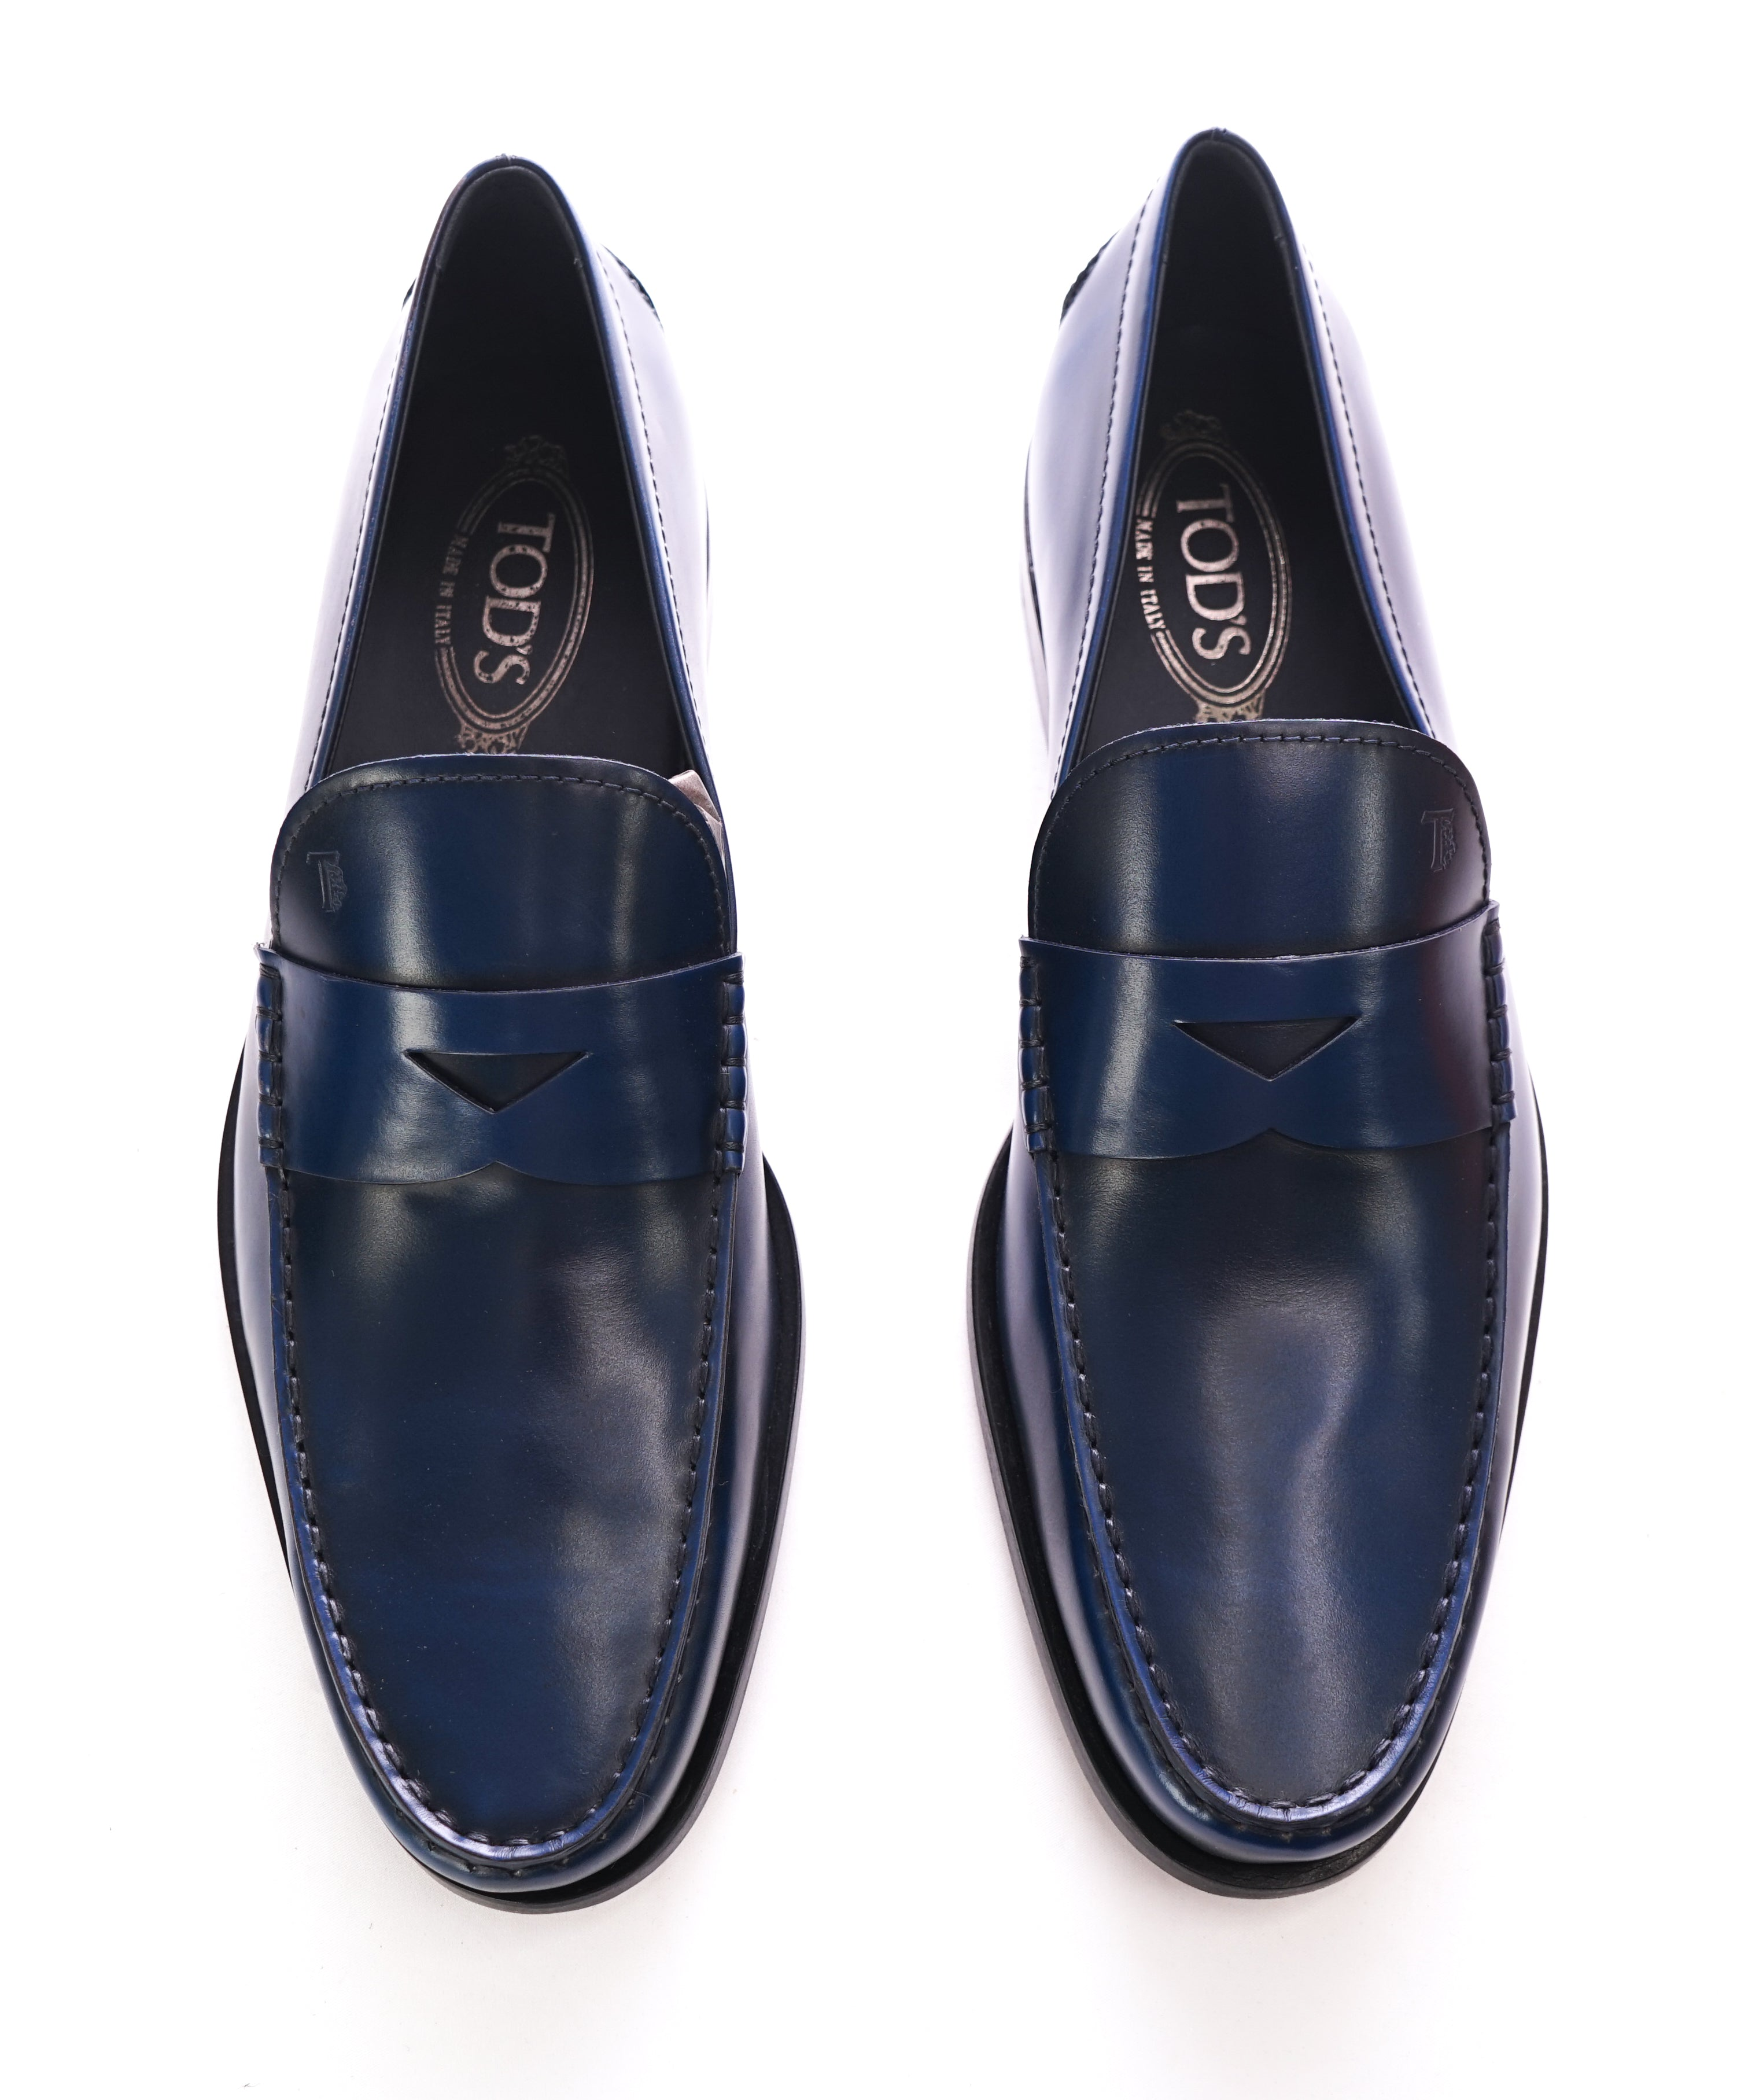 "c57dd575564 TOD S - Blue Leather Penny Loafers ""Boston Devon"" Leather Sole - 10.5US"